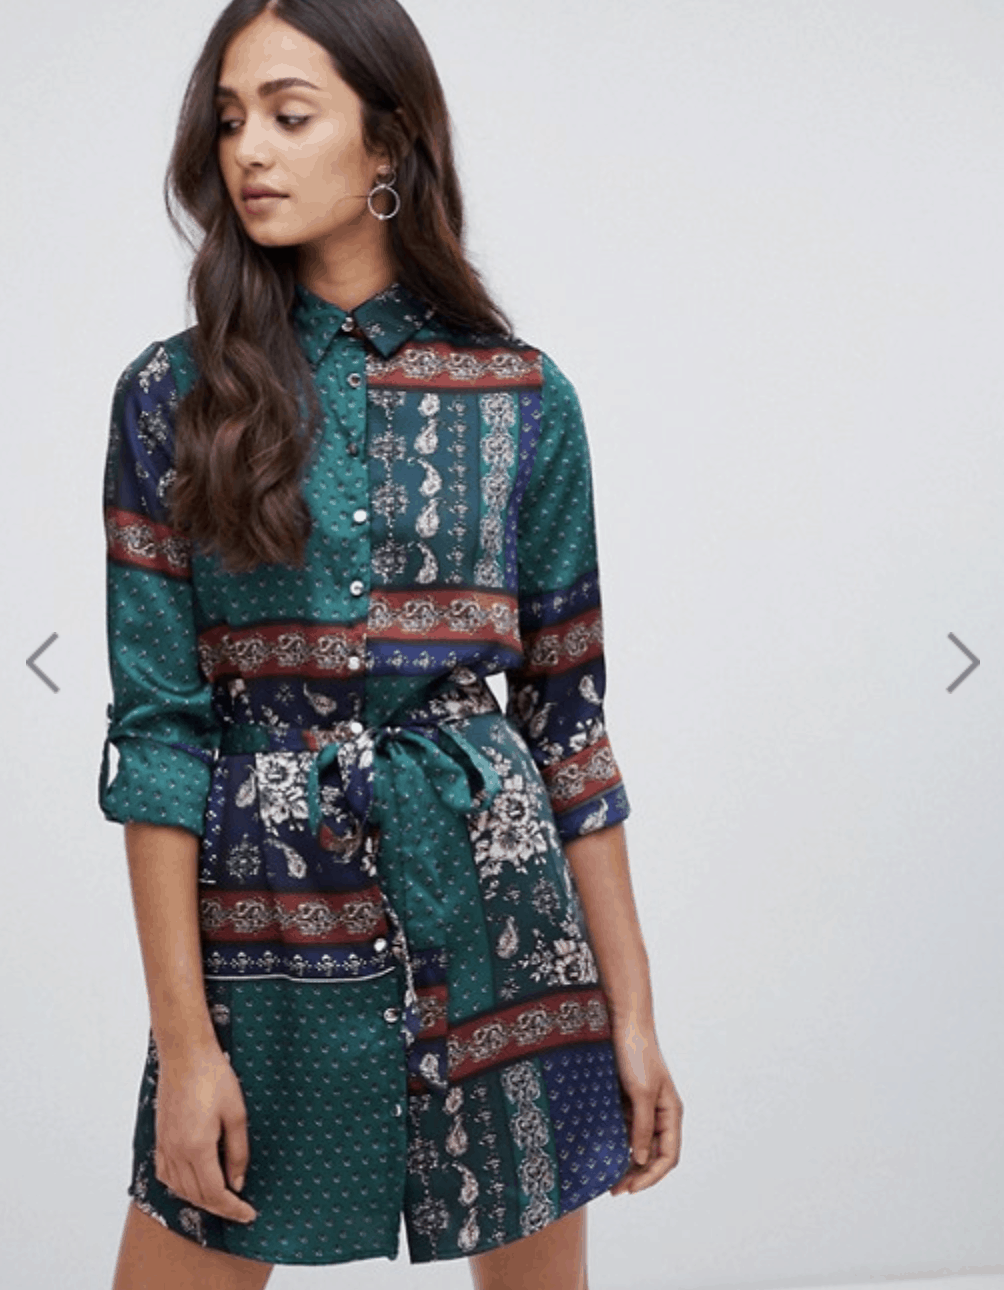 model in a shirt dress with bohemian scarf print